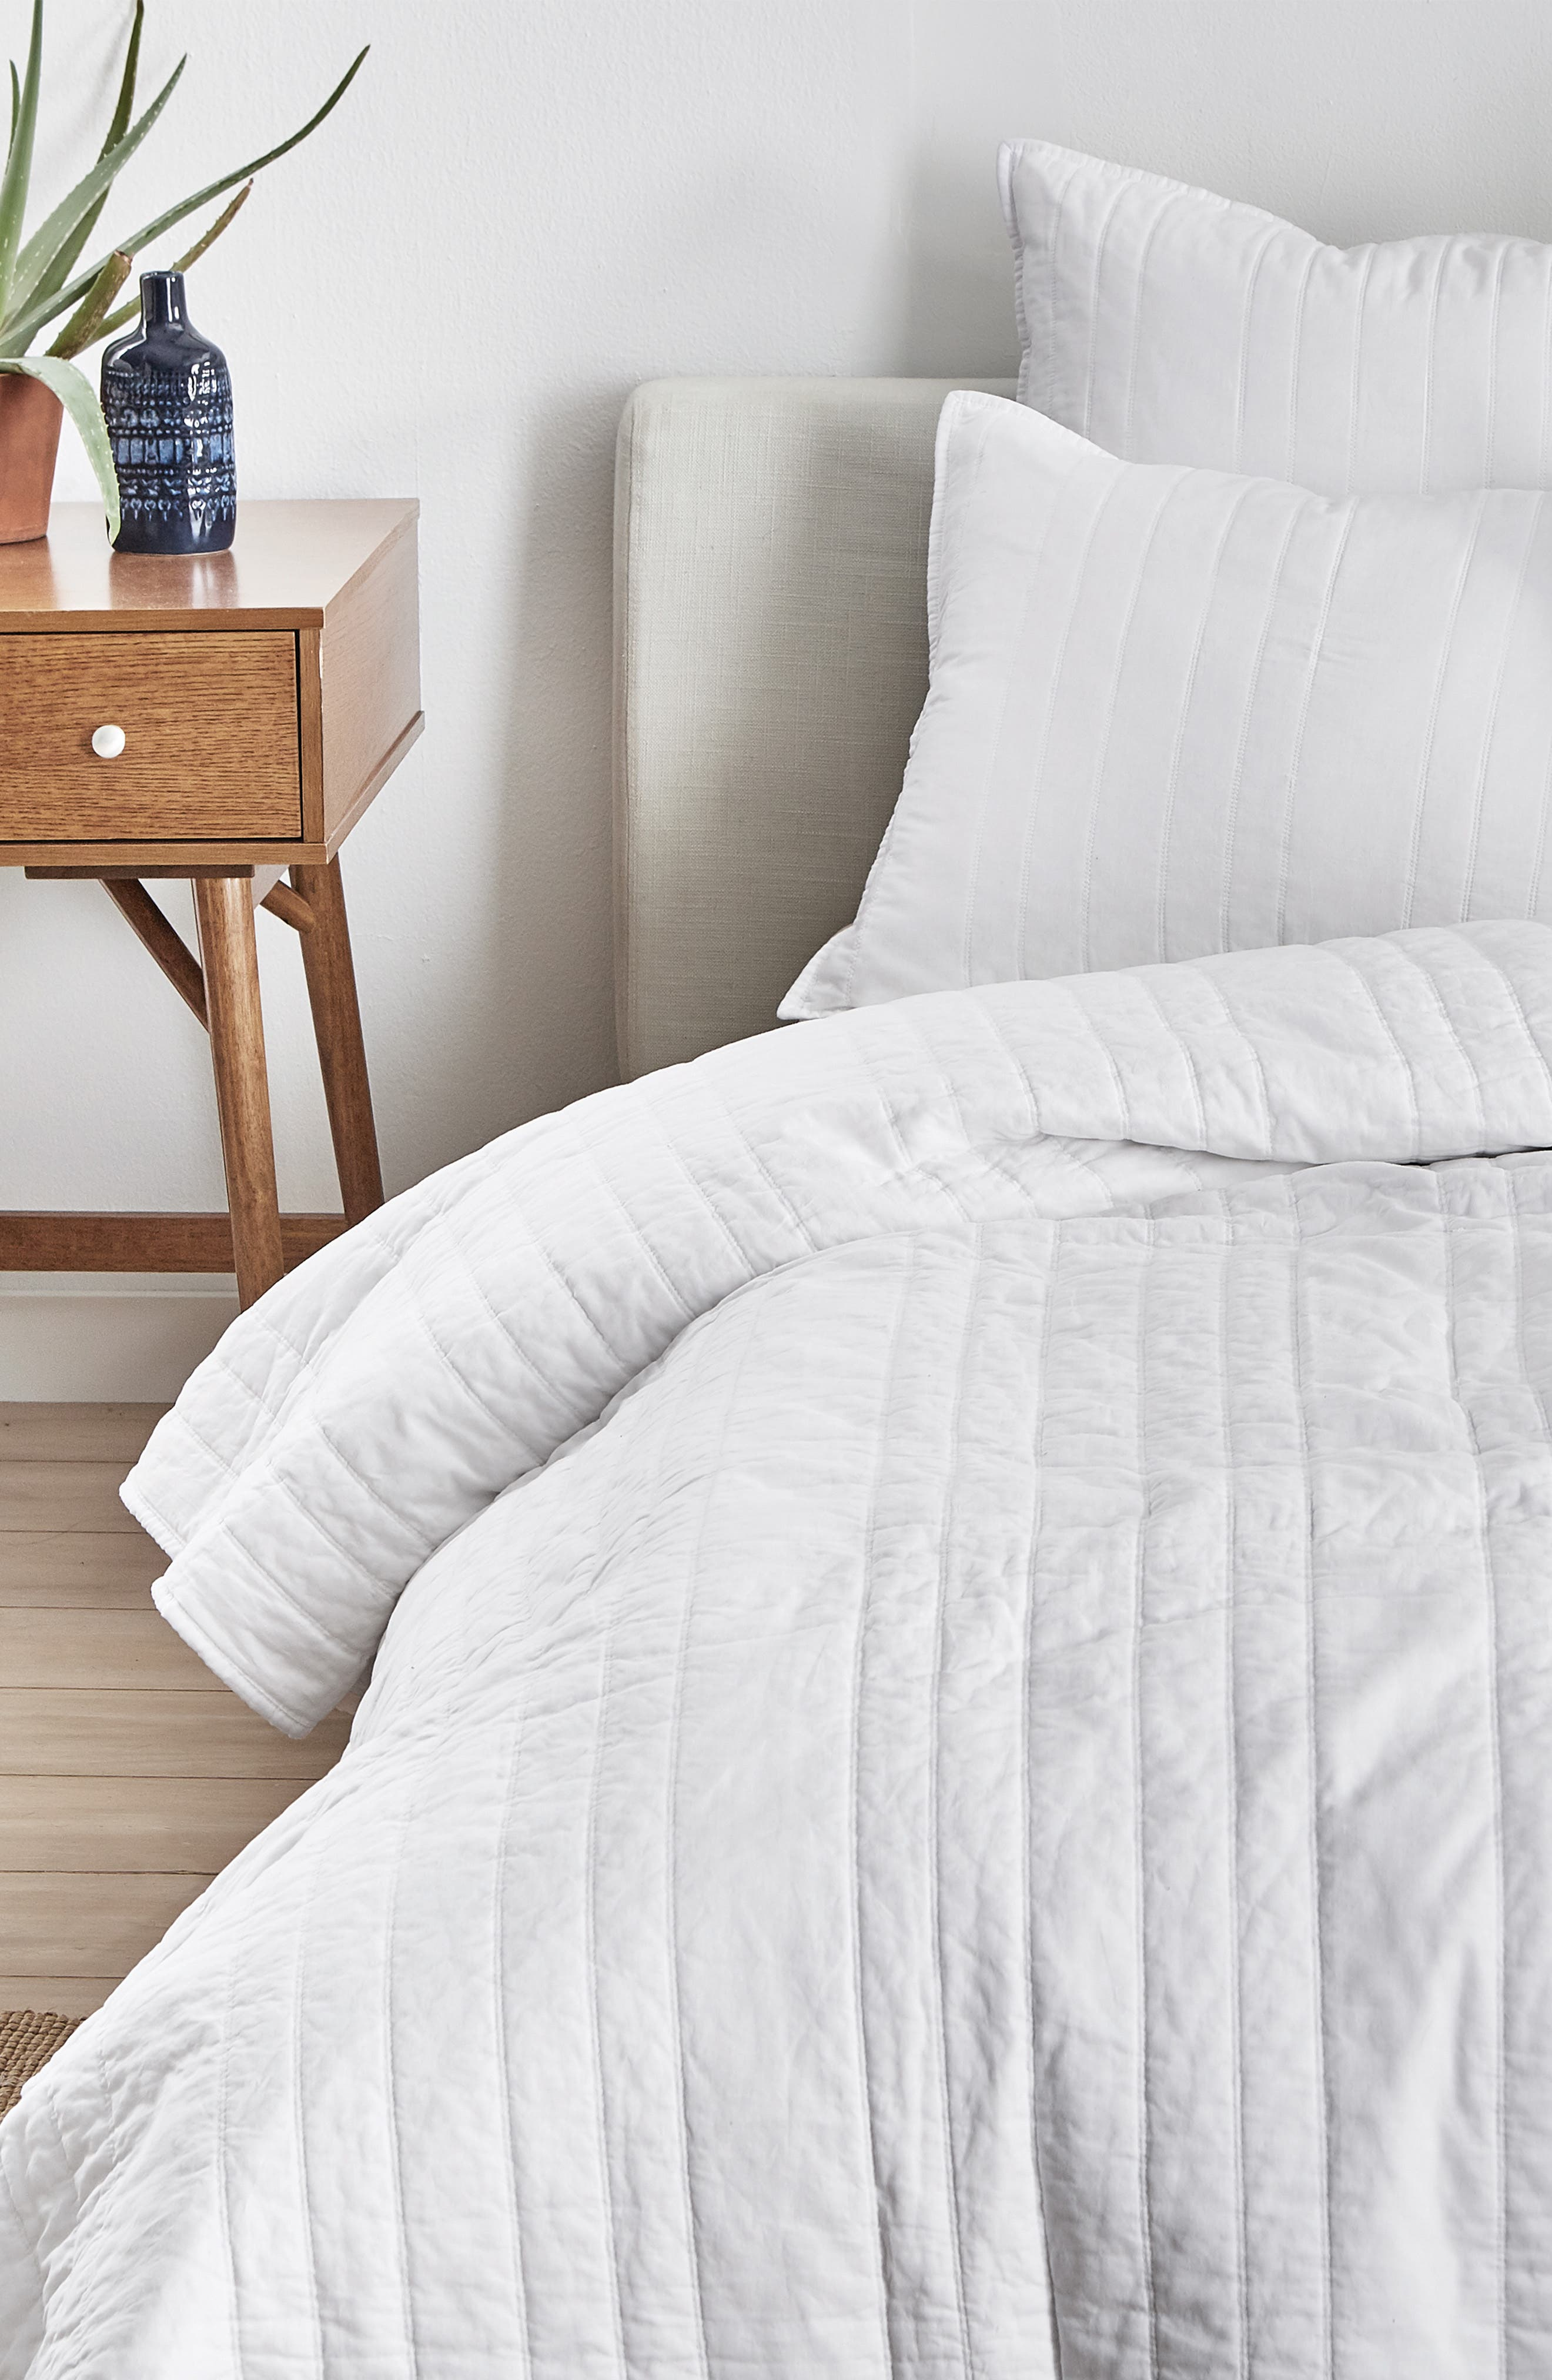 Give your bedroom decor a crisp yet cozy look with this reversible coverlet quilted in a varied-stripe pattern. Style Name: Splendid Home Decor Reversible Coverlet. Style Number: 5692671. Available in stores.